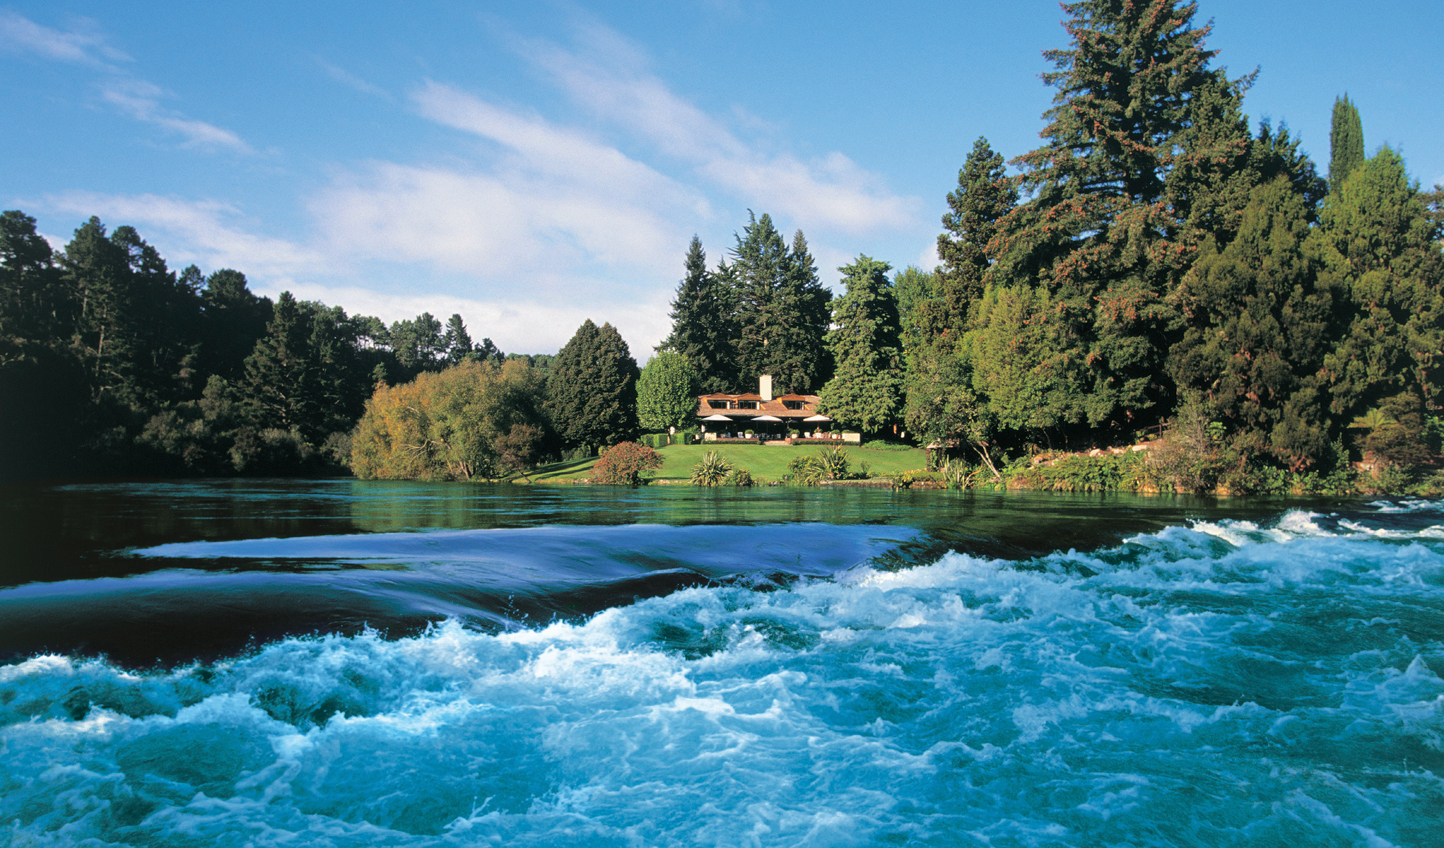 The beautiful blues and tranquil turquoises of the Waikato River